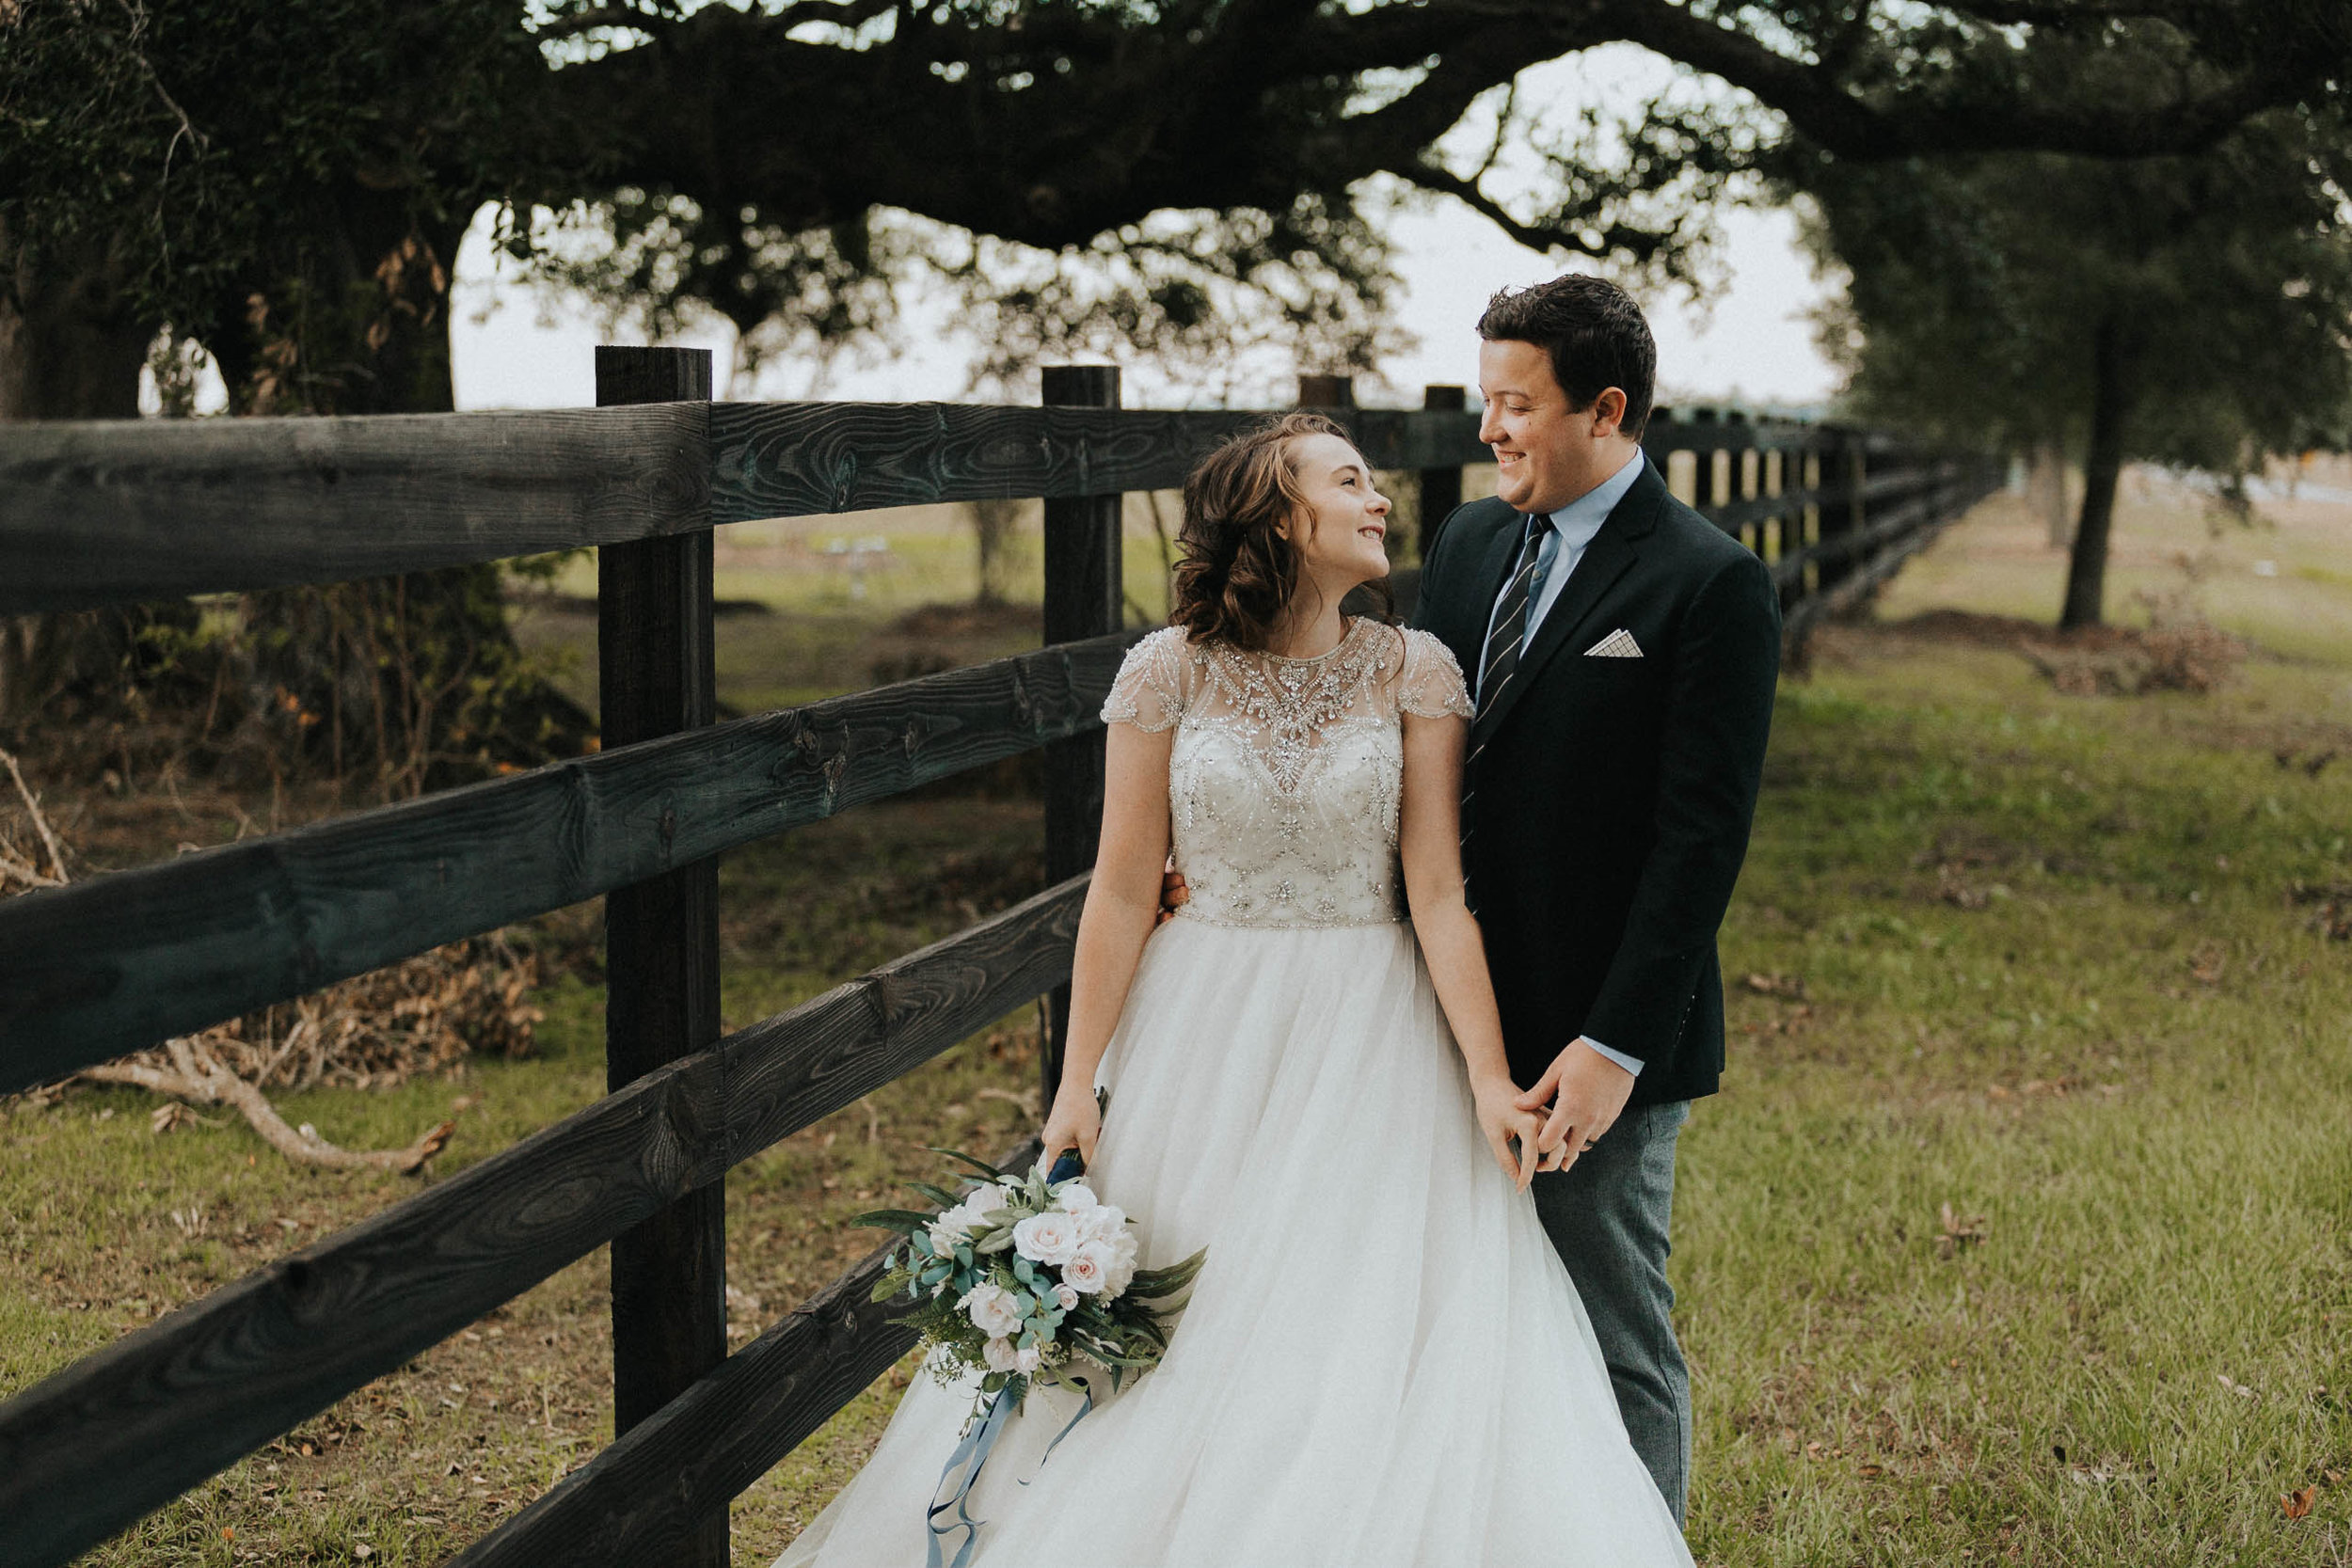 Wedding-Photographers-Lake-Charles-Louisiana